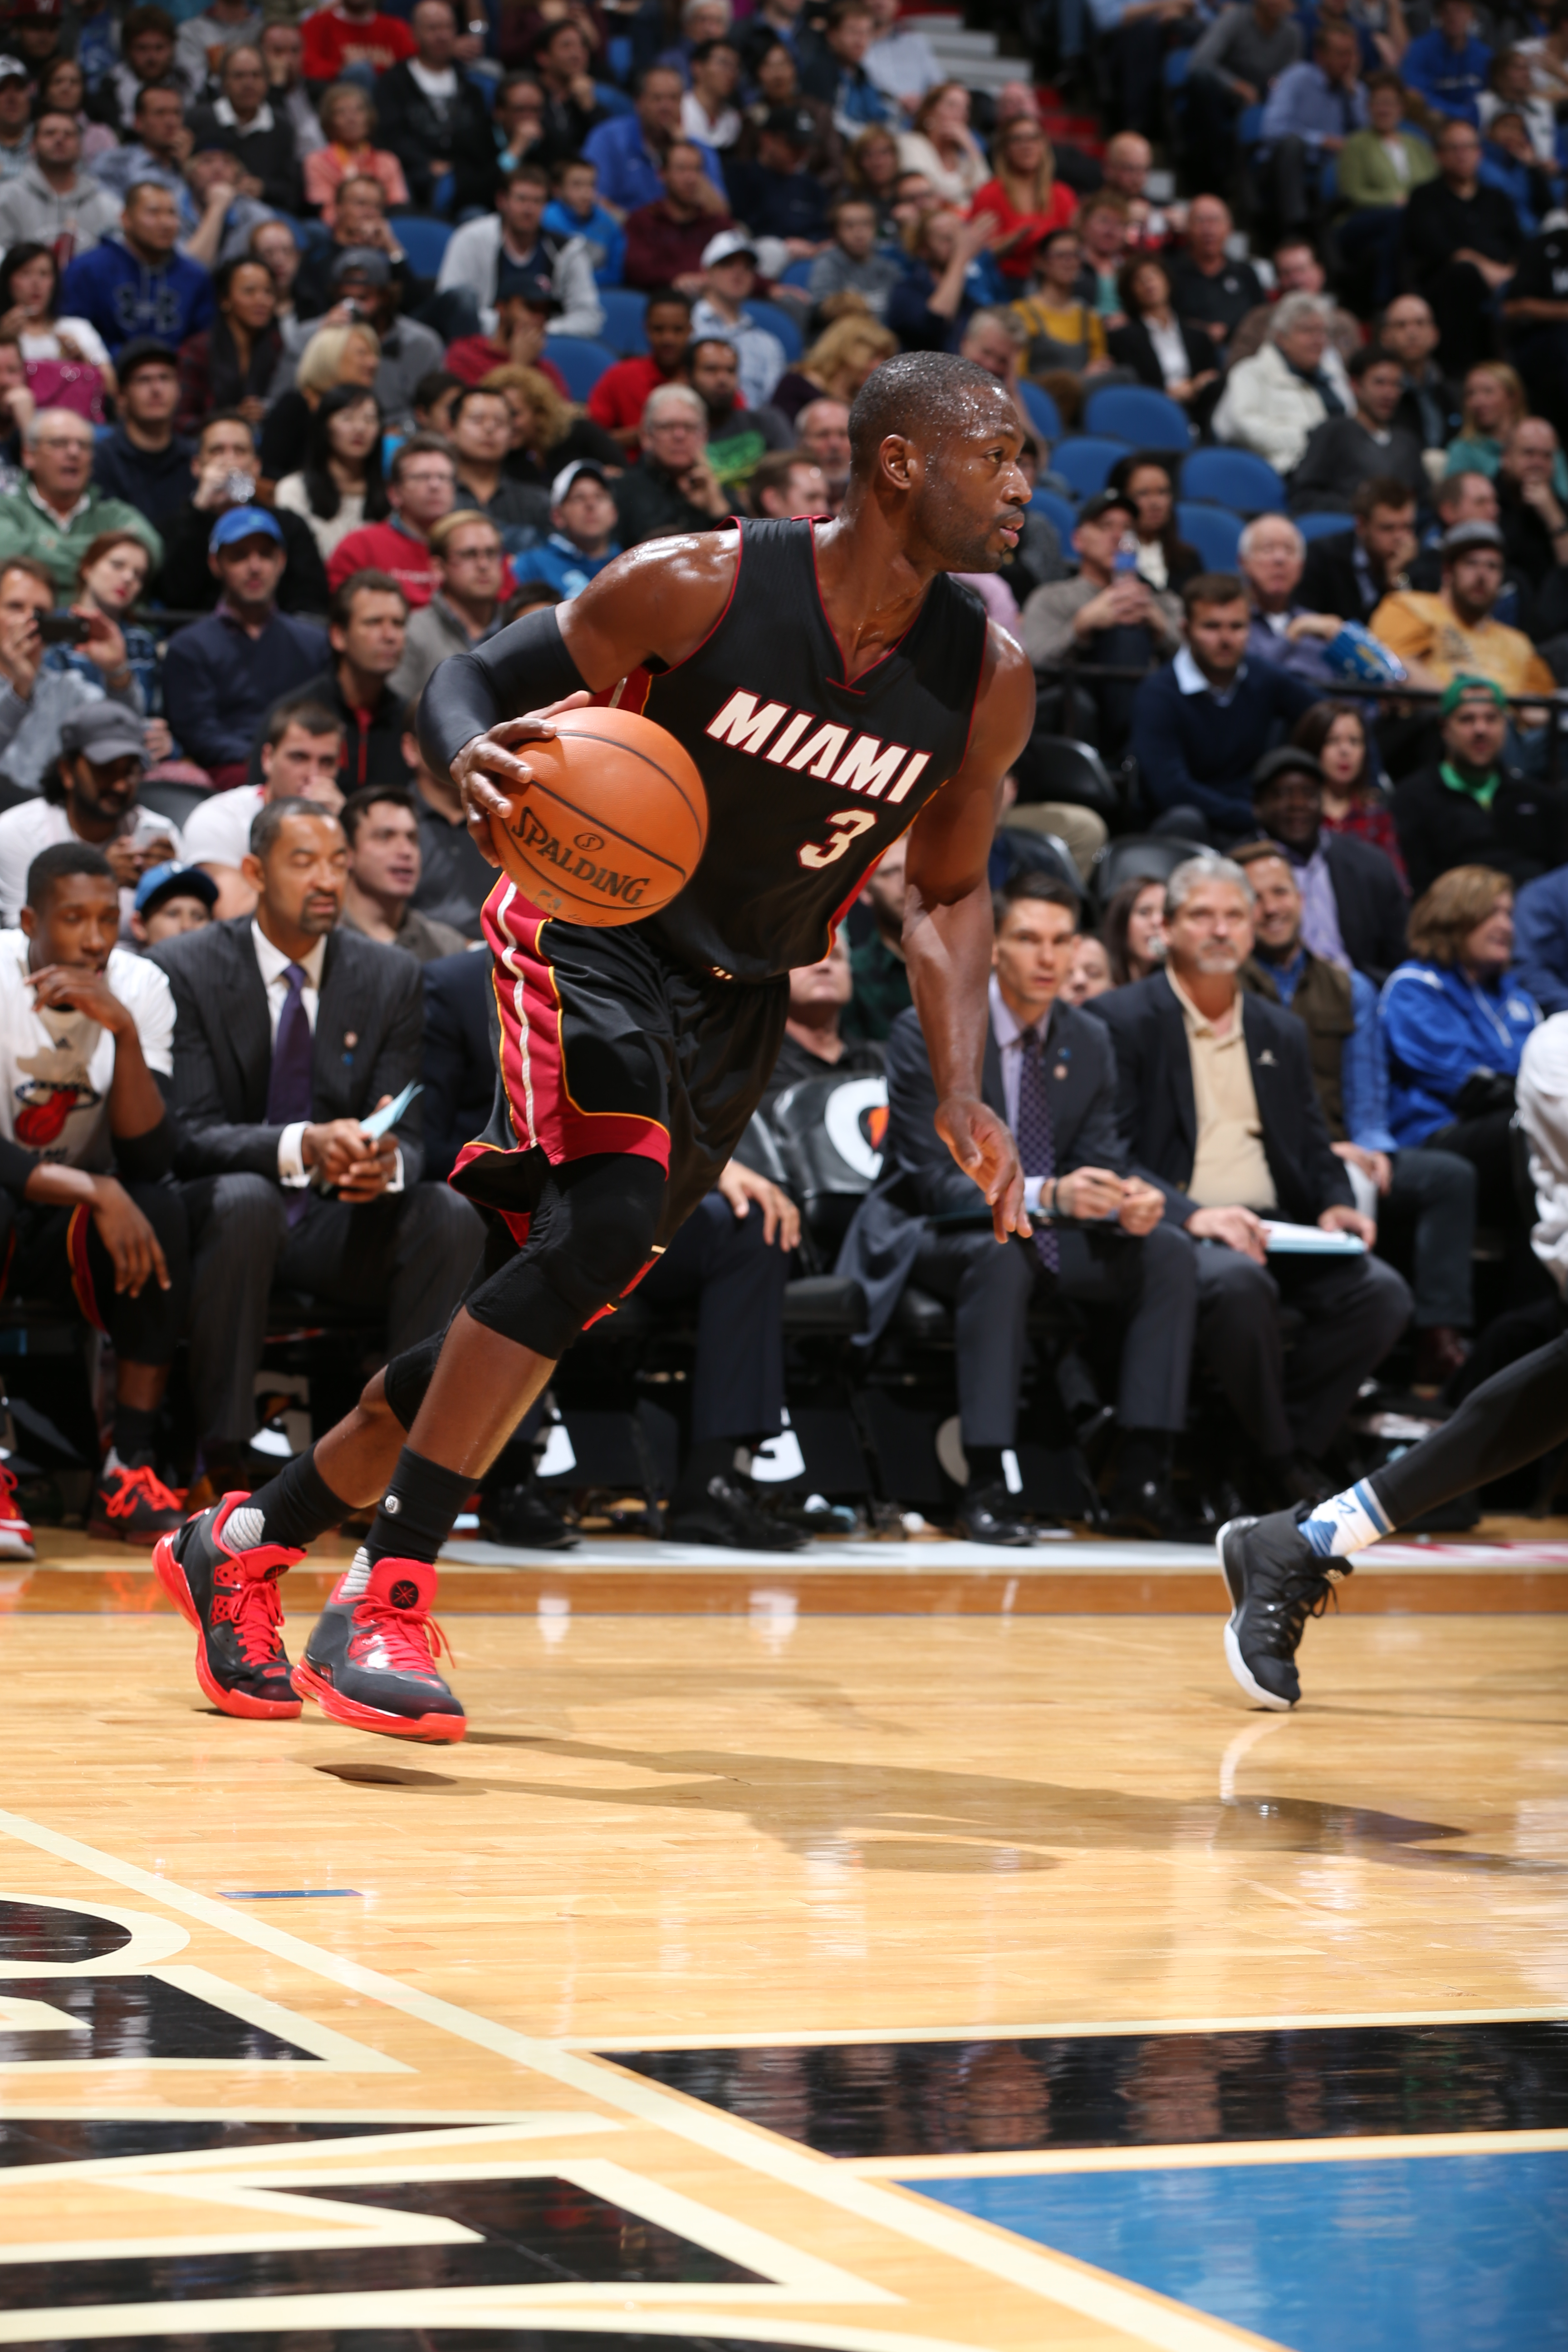 MINNEAPOLIS, MN -  NOVEMBER 5:  Dwyane Wade #3 of the Miami Heat dribbles the ball against the Minnesota Timberwolves n November 5, 2015 at Target Center in Minneapolis, Minnesota. (Photo by David Sherman/NBAE via Getty Images)